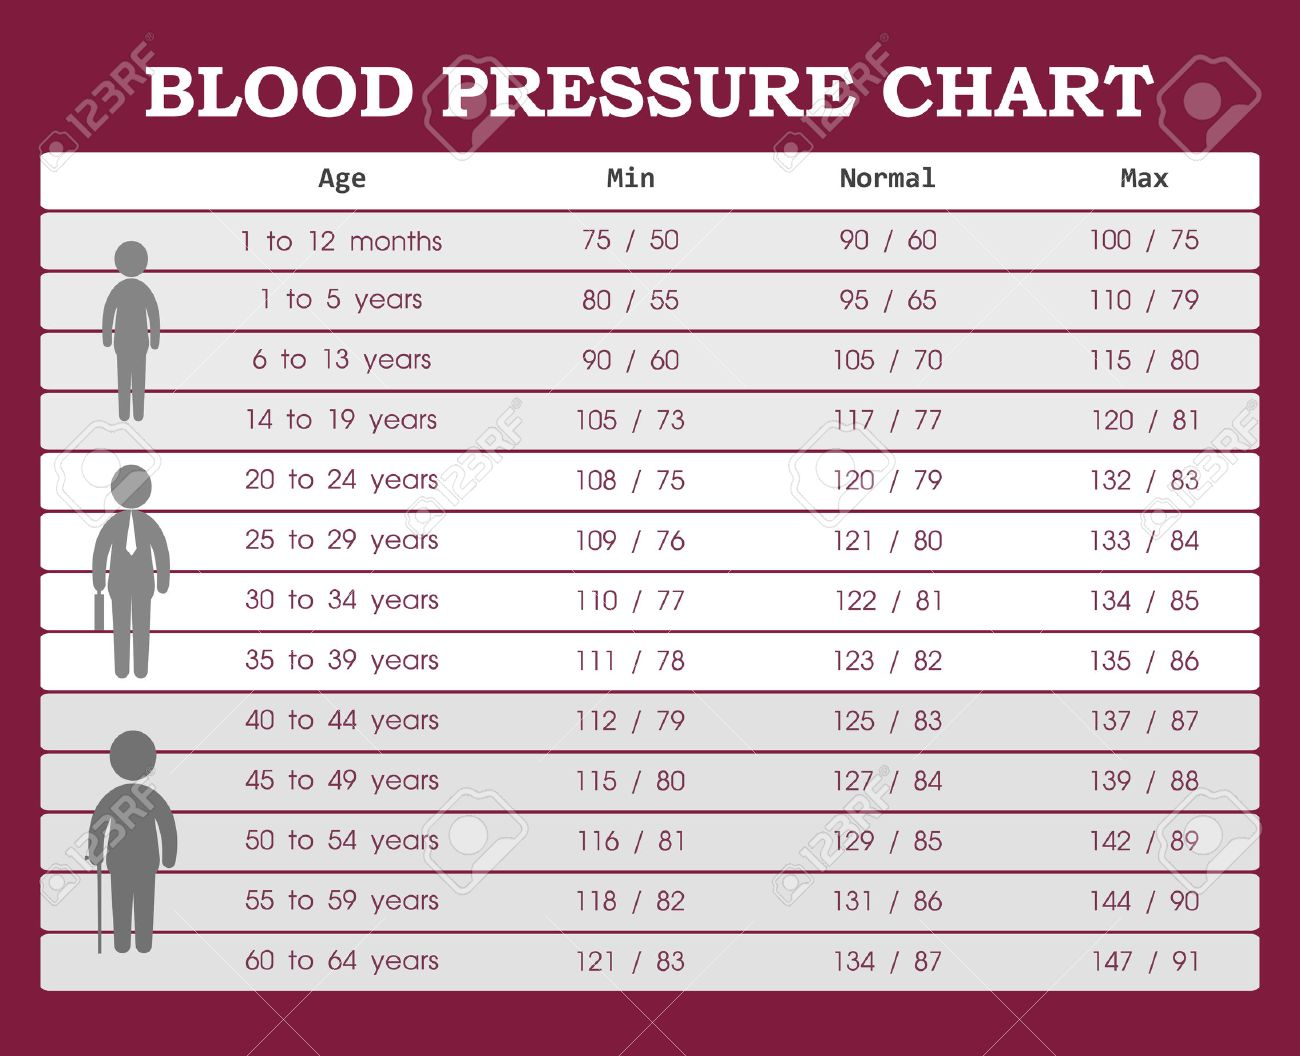 blood pressure chart hd images: Blood pressure chart from young people to old people royalty free